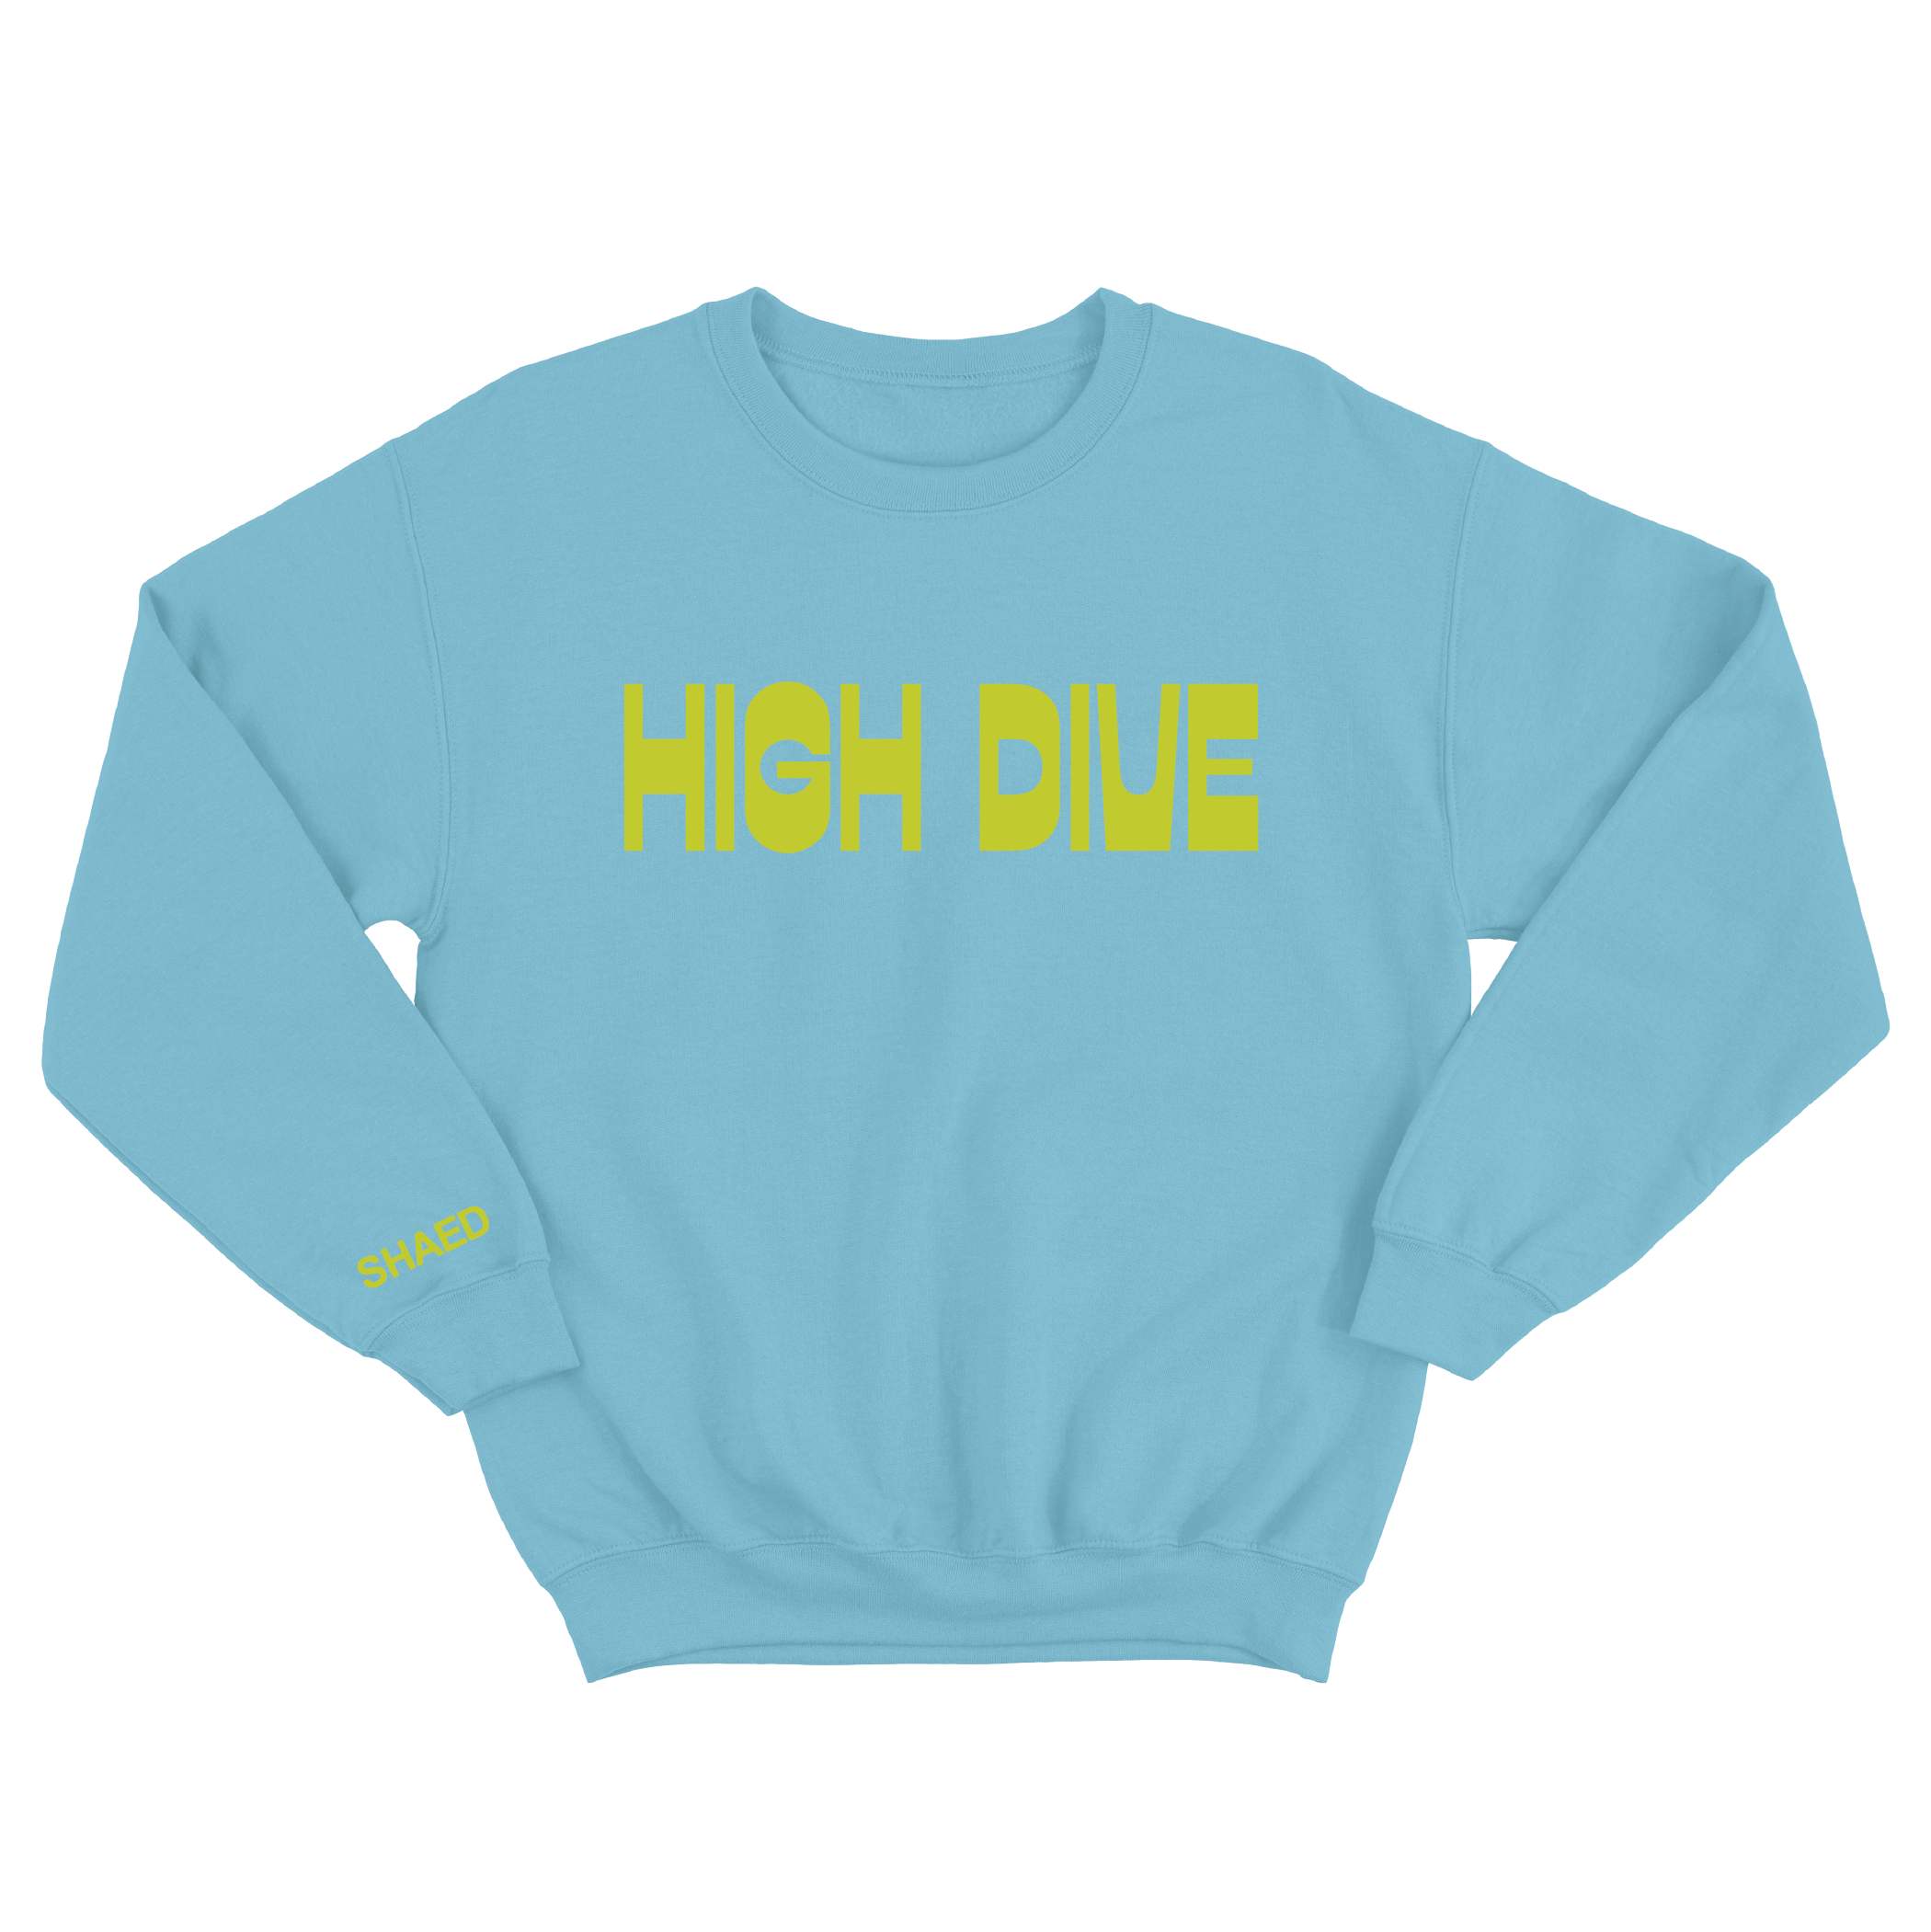 High Dive Sweater